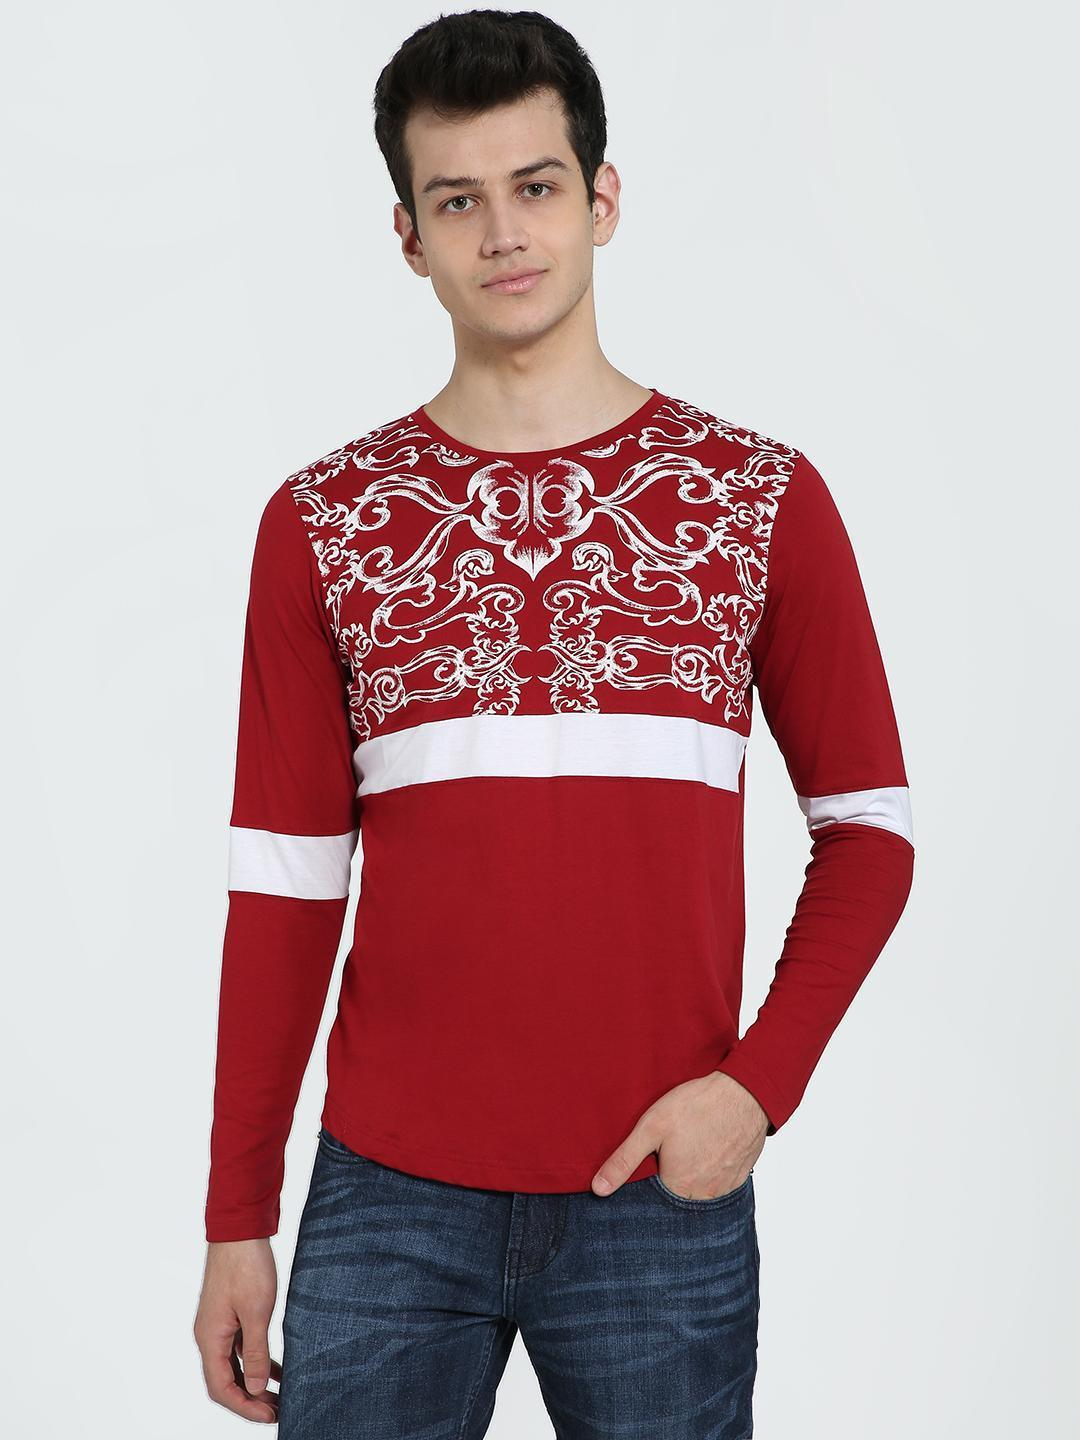 IMPACKT Red Contrast Panel Long Sleeve T-Shirt 1